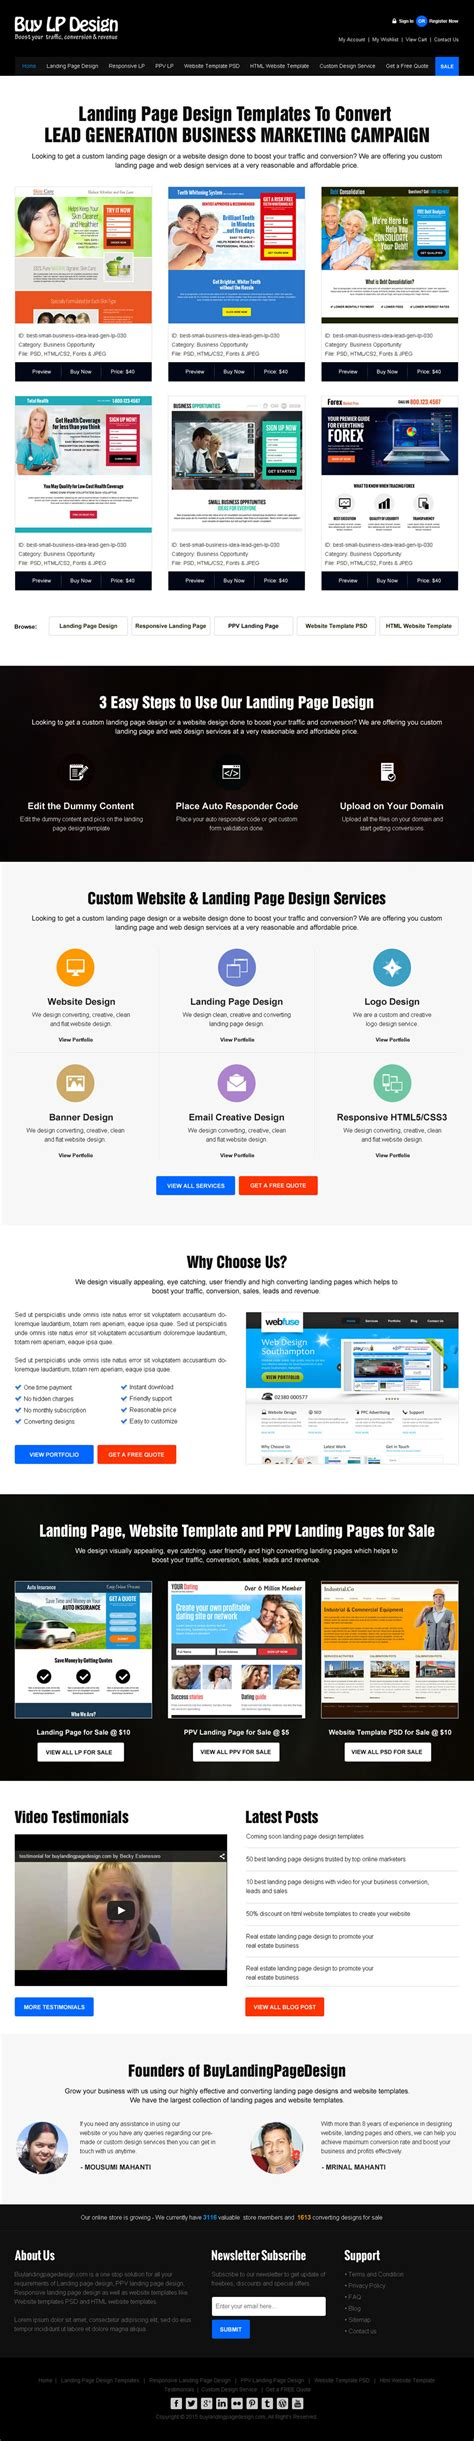 the best mobile responsive landing page design selling website